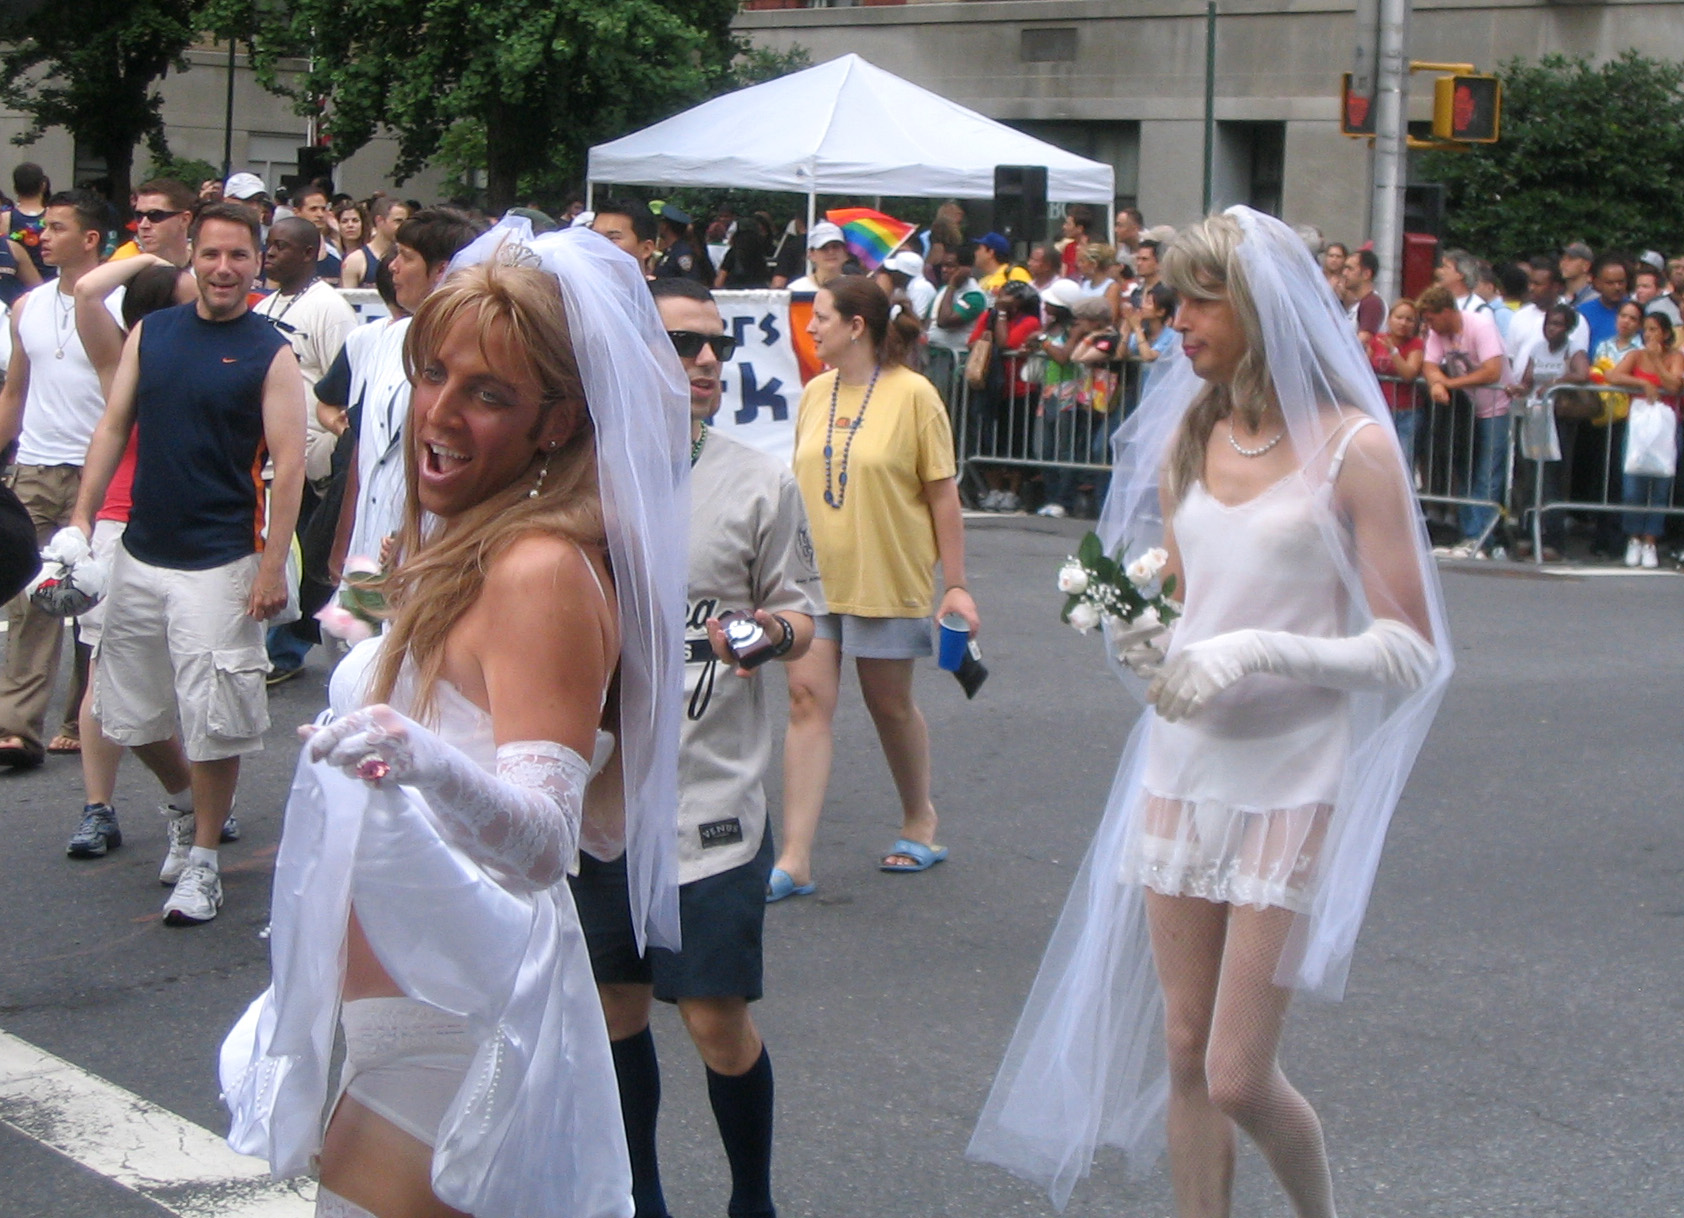 Gay marriage laws passed